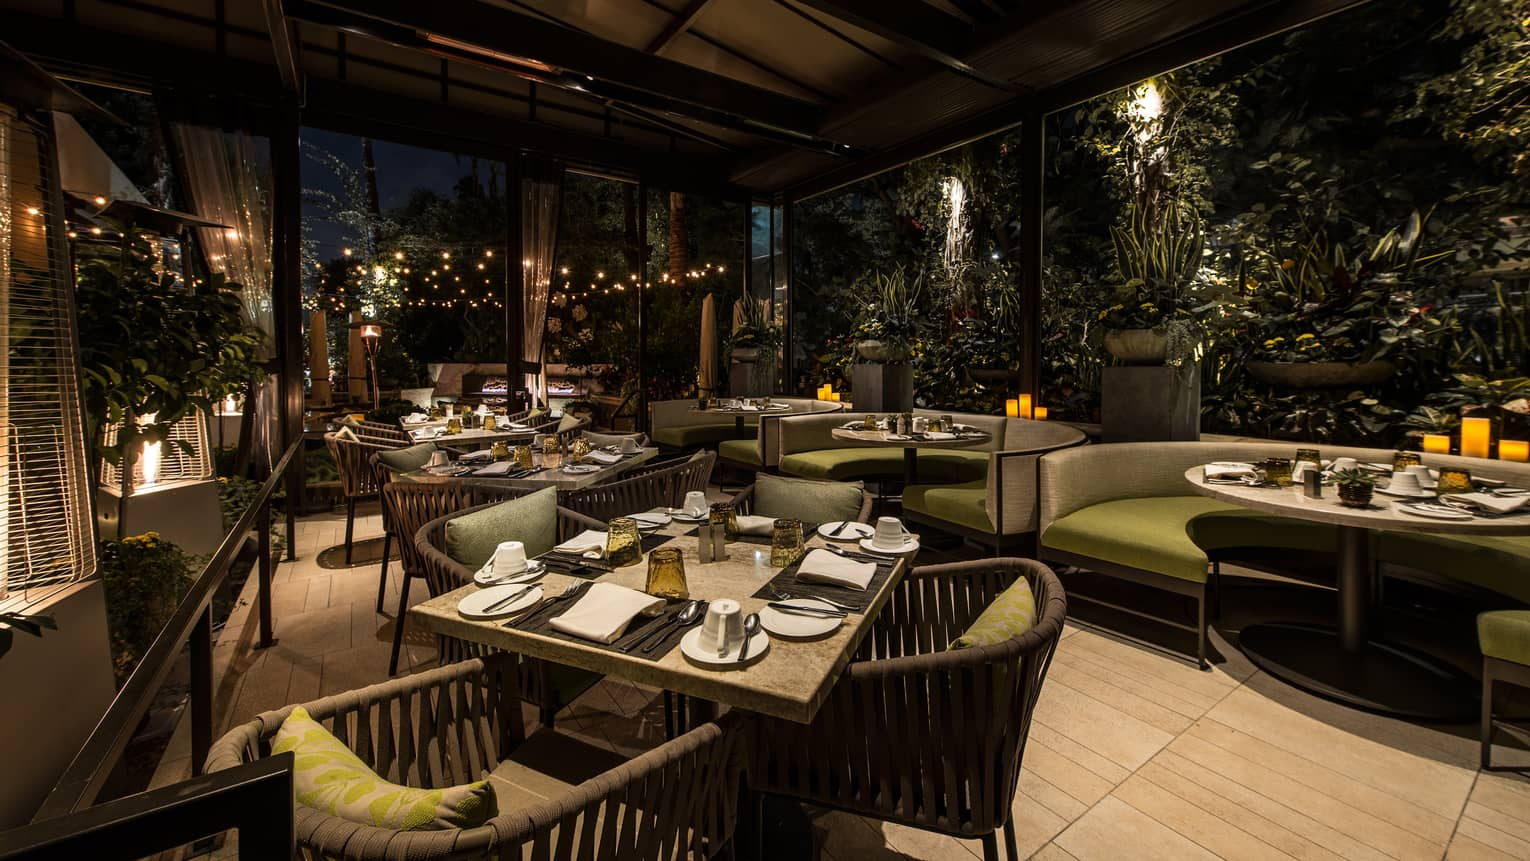 Culina Restaurant dining patio, plush green and grey dining chairs, booths under awning at night